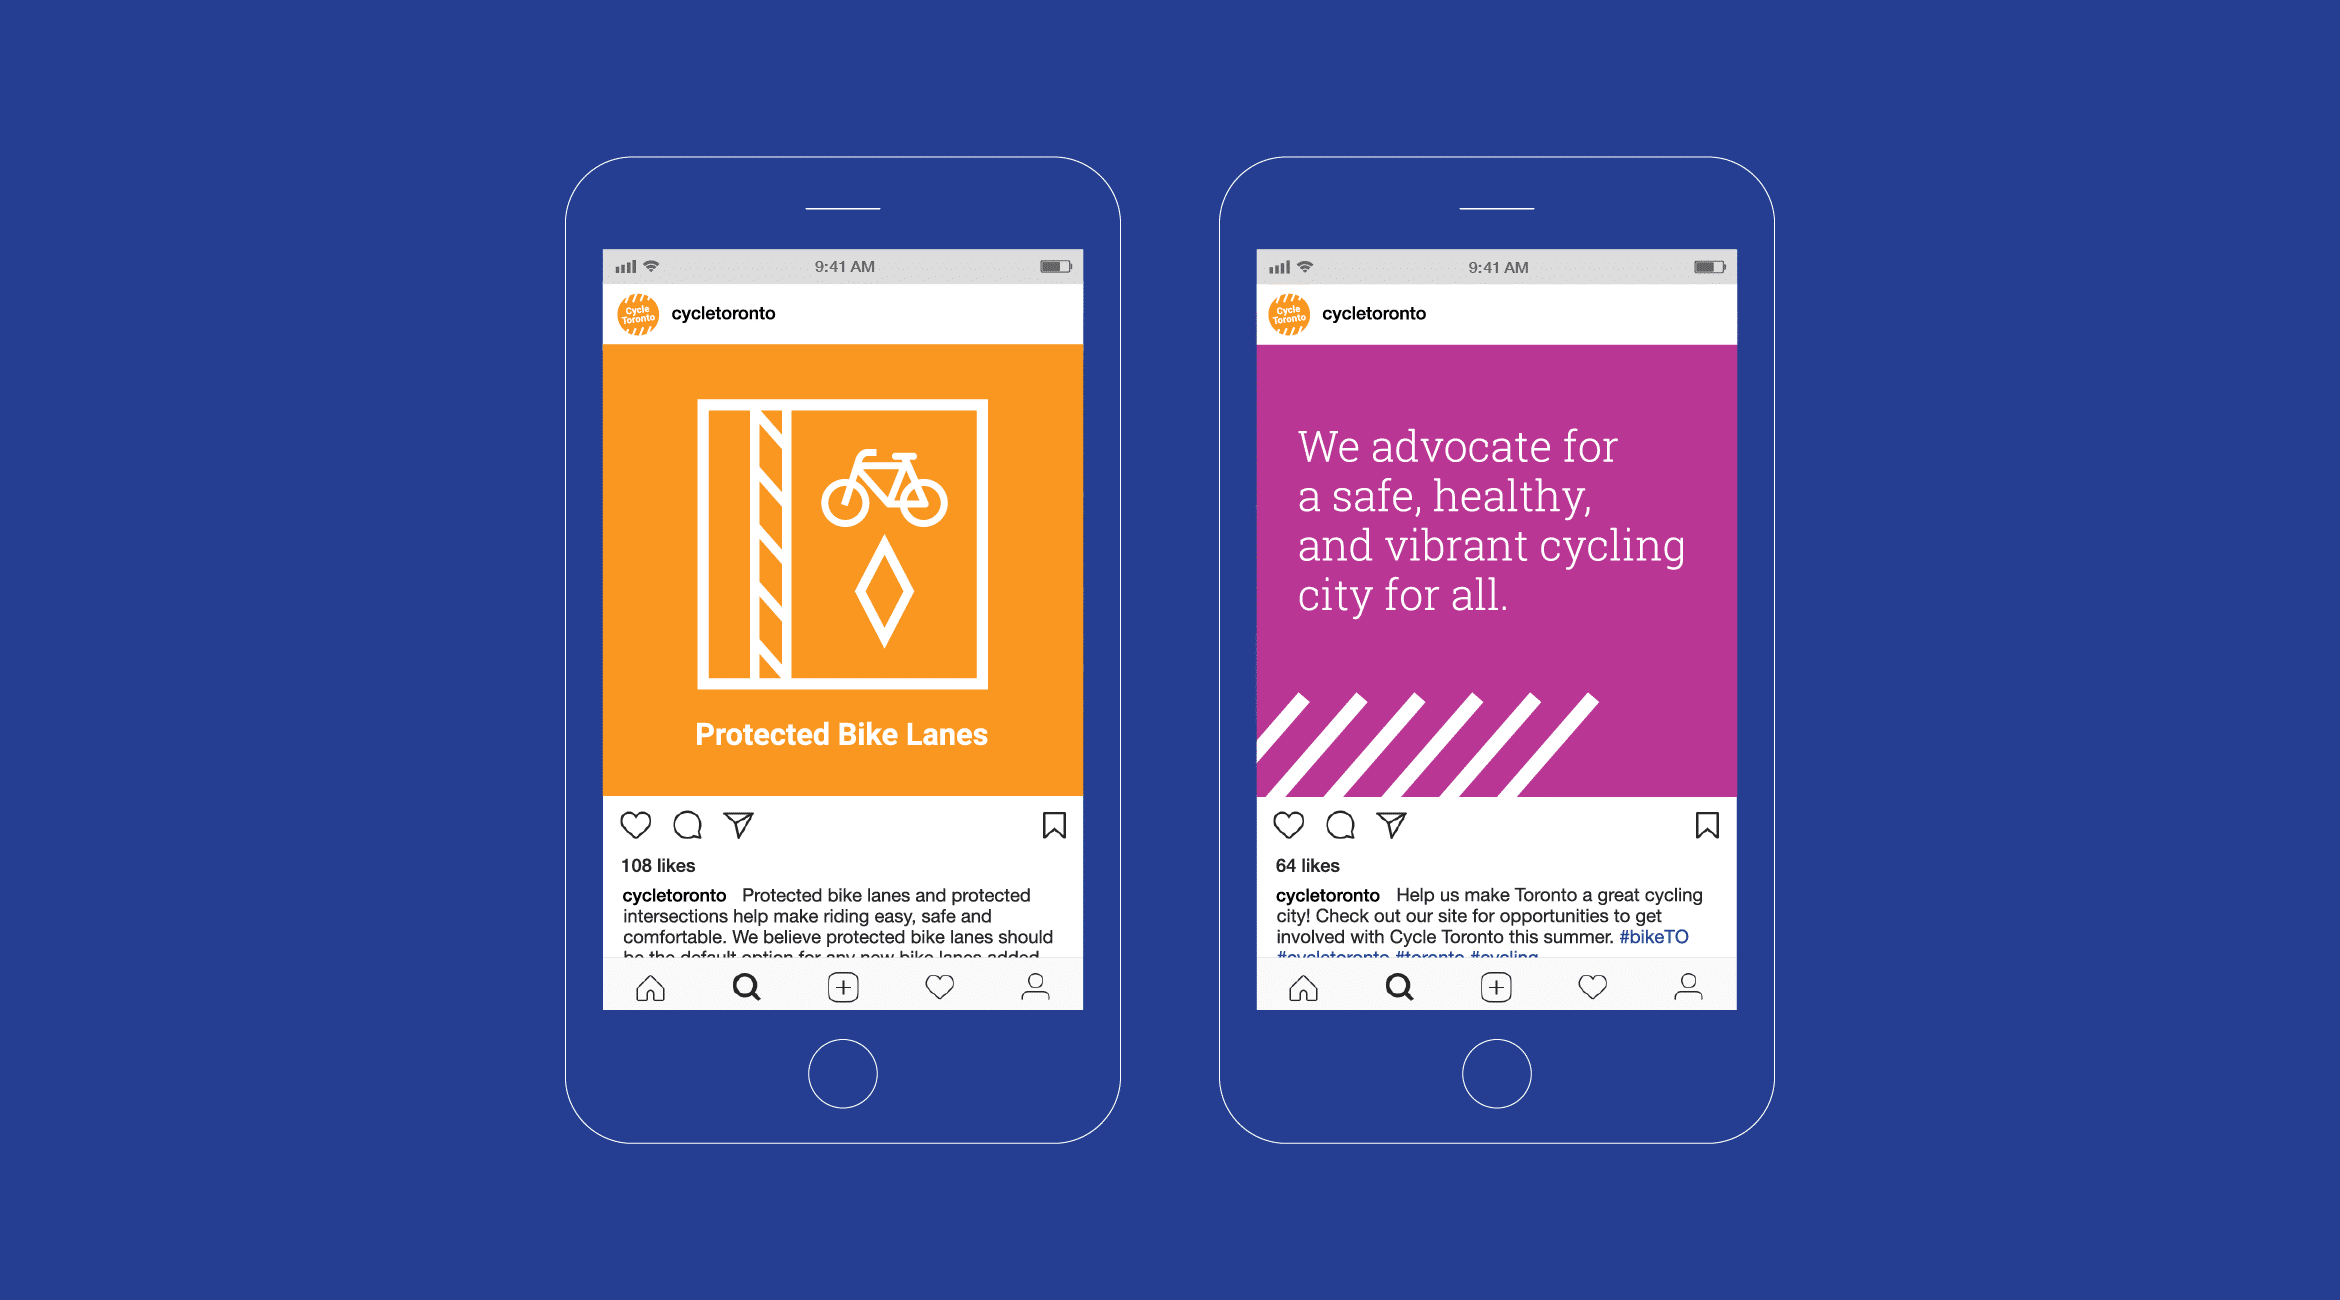 Two mobile phone screens each showing a different Instagram social media post that uses Cycle Toronto's brand elements with messaging.